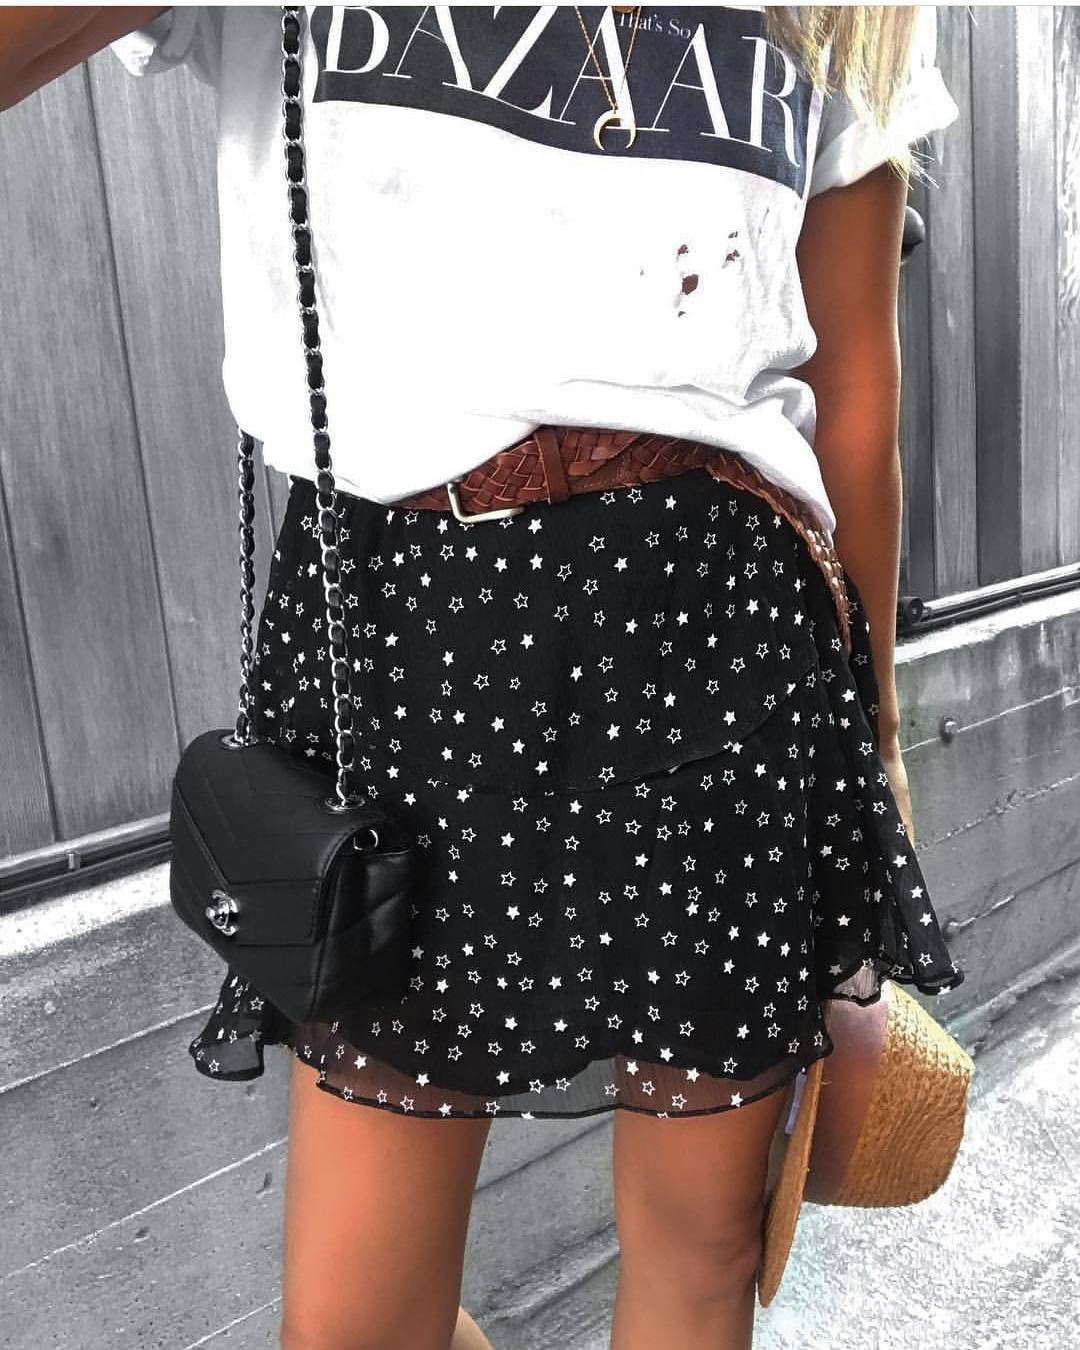 White and black colour outfit ideas 2020 with miniskirt, polka dot, shorts